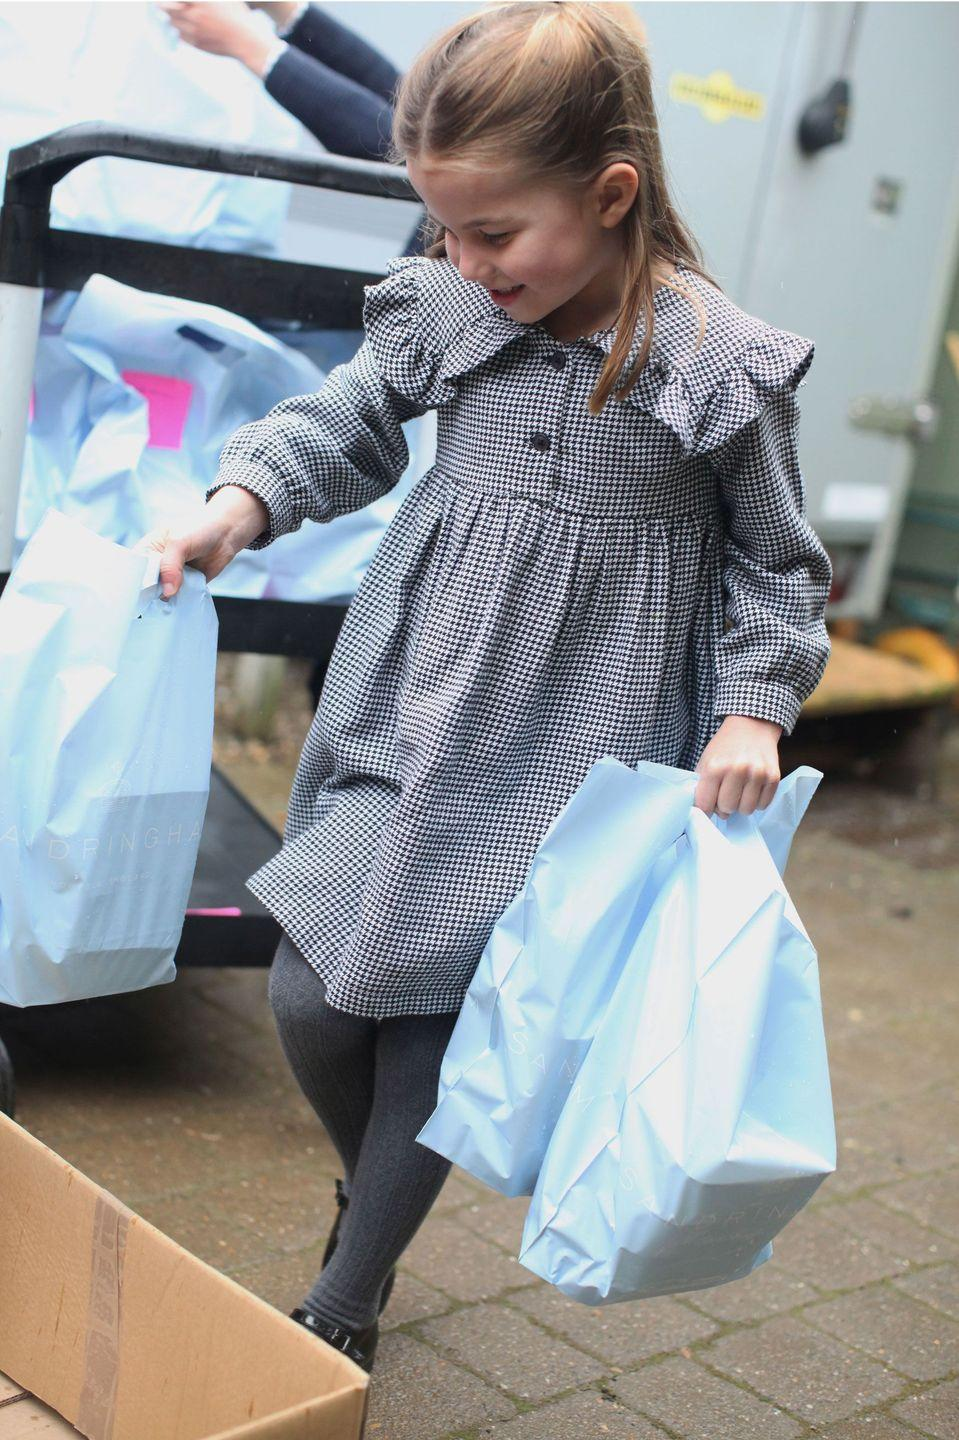 "<p>Ahead of Princess Charlotte's fifth birthday, Kensington Palace released a series of portraits of the young royal taken by her mother, the Duchess of Cambridge. The photos show Charlotte volunteering with her family during the coronavirus crisis. <a href=""https://www.townandcountrymag.com/society/tradition/a32307108/kate-middleton-princess-charlotte-5th-birthday-sandringham-photos/"" rel=""nofollow noopener"" target=""_blank"" data-ylk=""slk:See them all here."" class=""link rapid-noclick-resp"">See them all here. </a></p>"